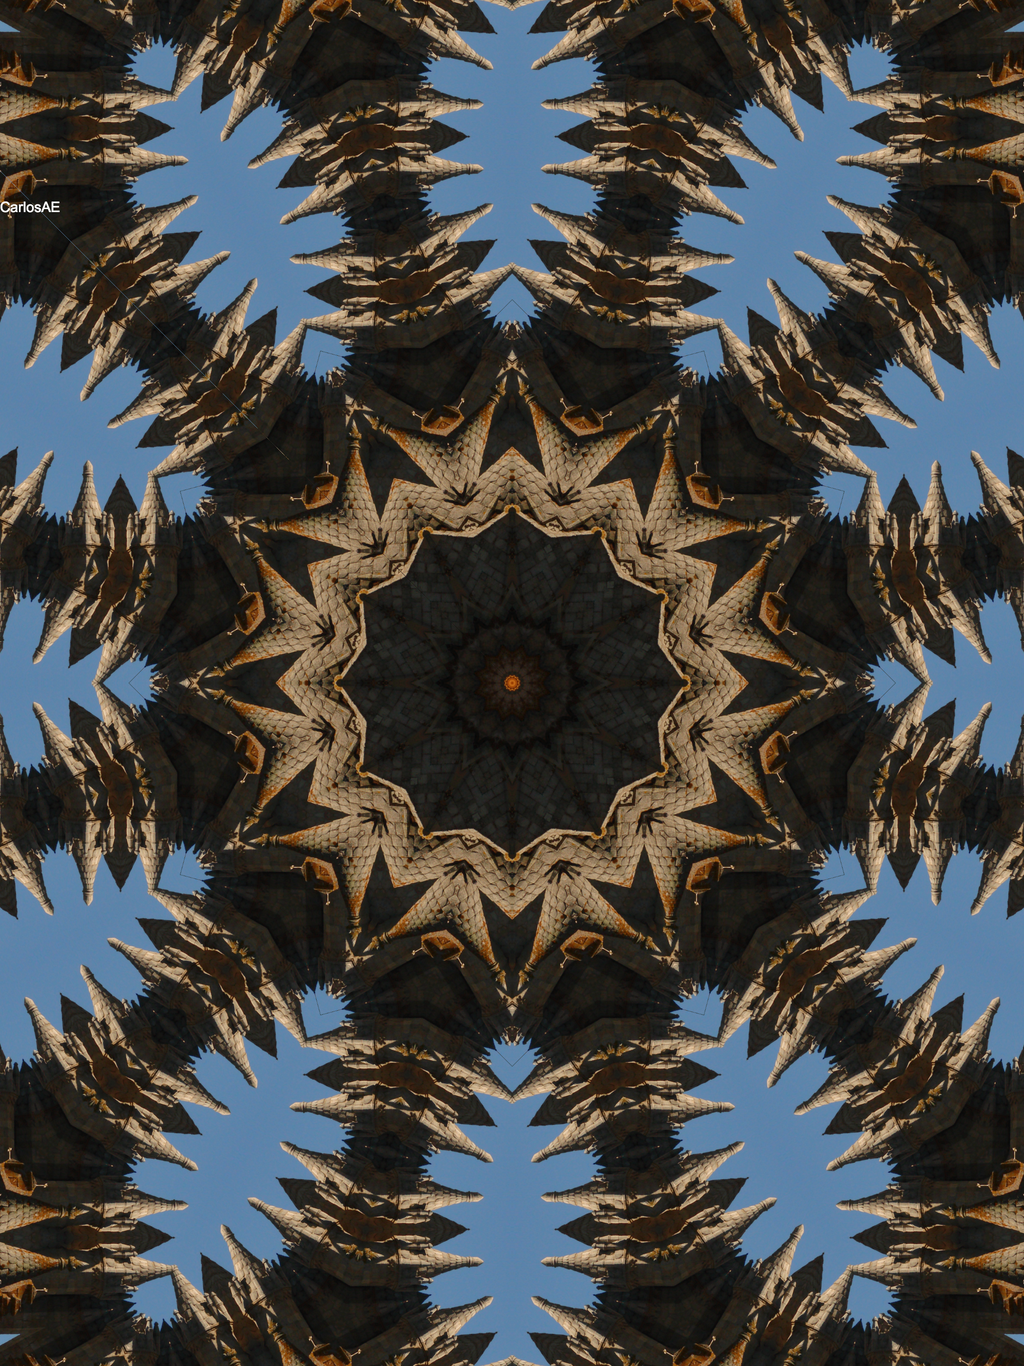 Sun of a castle towers kaleidoscope by carlosae on deviantart for Sun castle